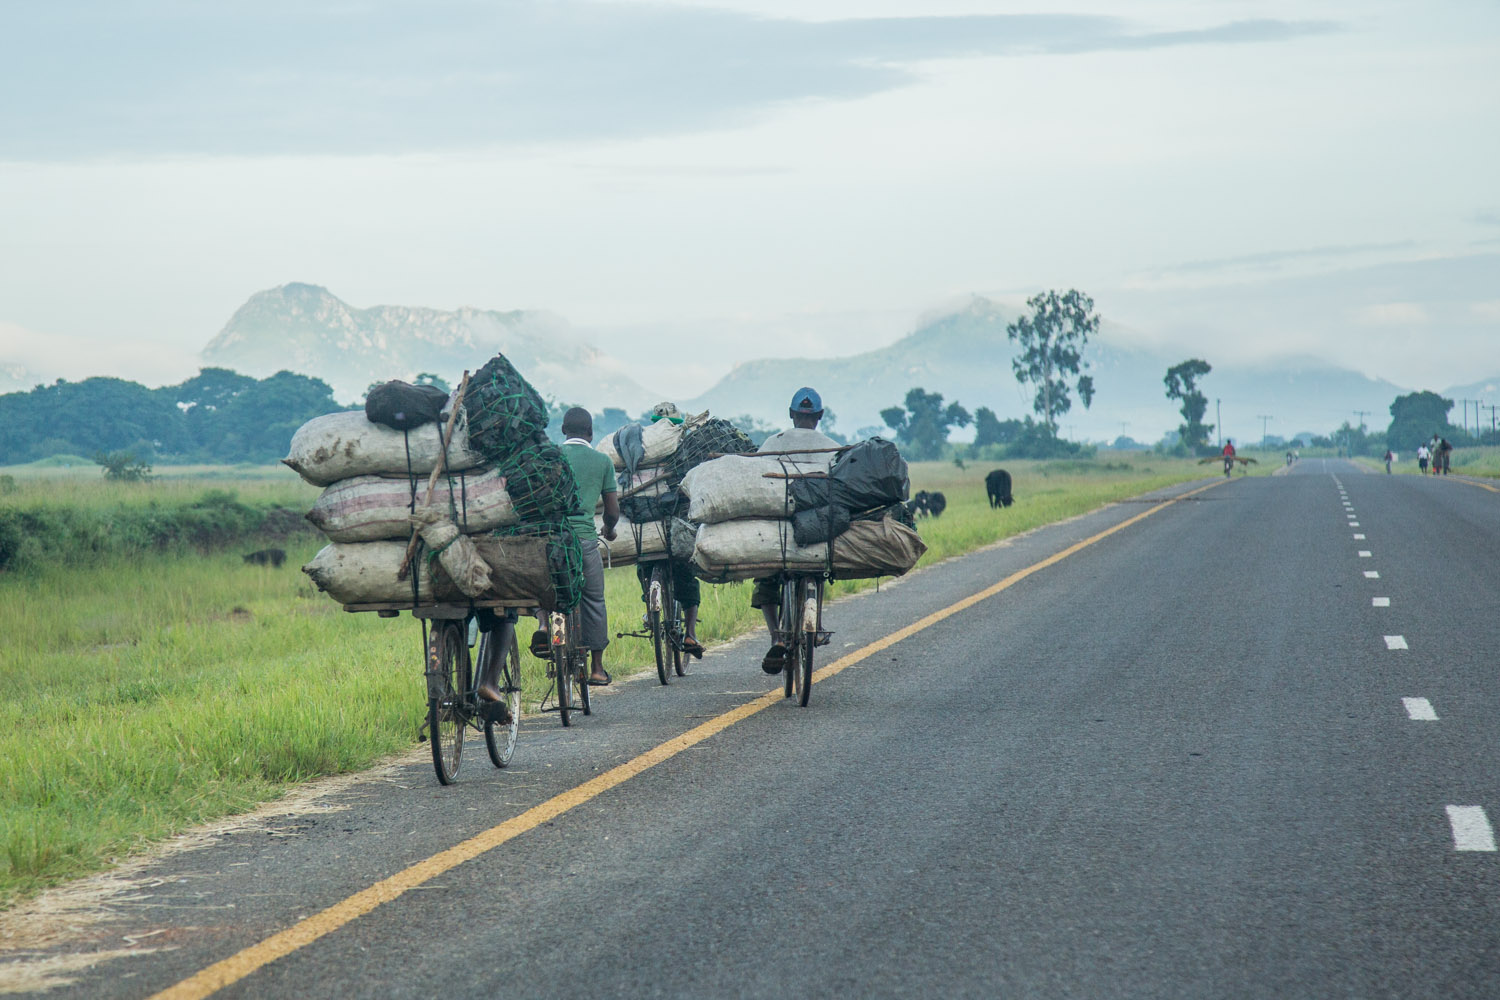 Men cycle with bags of charcoal, mountains in the background